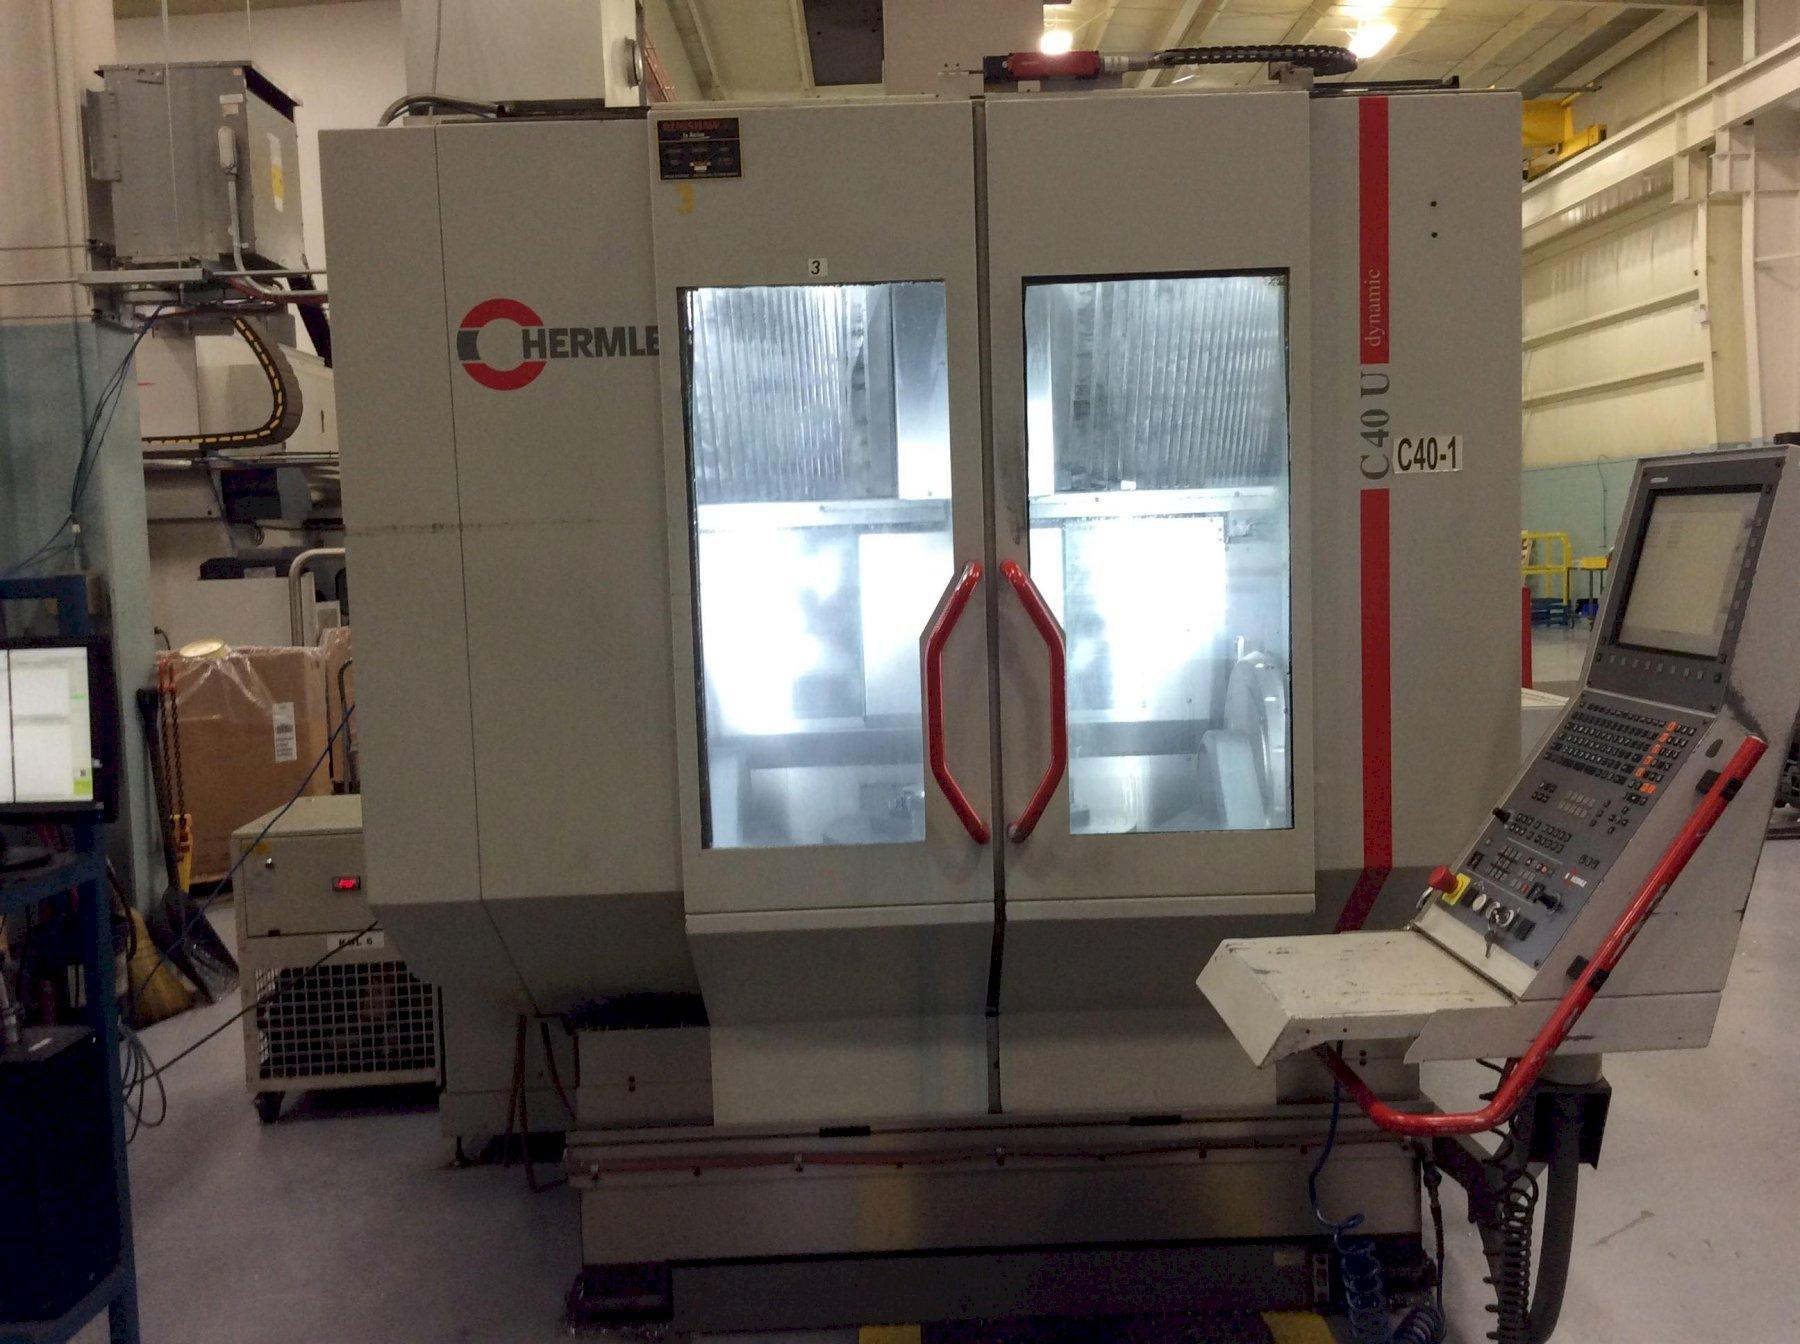 Hermle C-40U 5-Axis CNC Vertical Machining Center, Heidenhain, 29.5